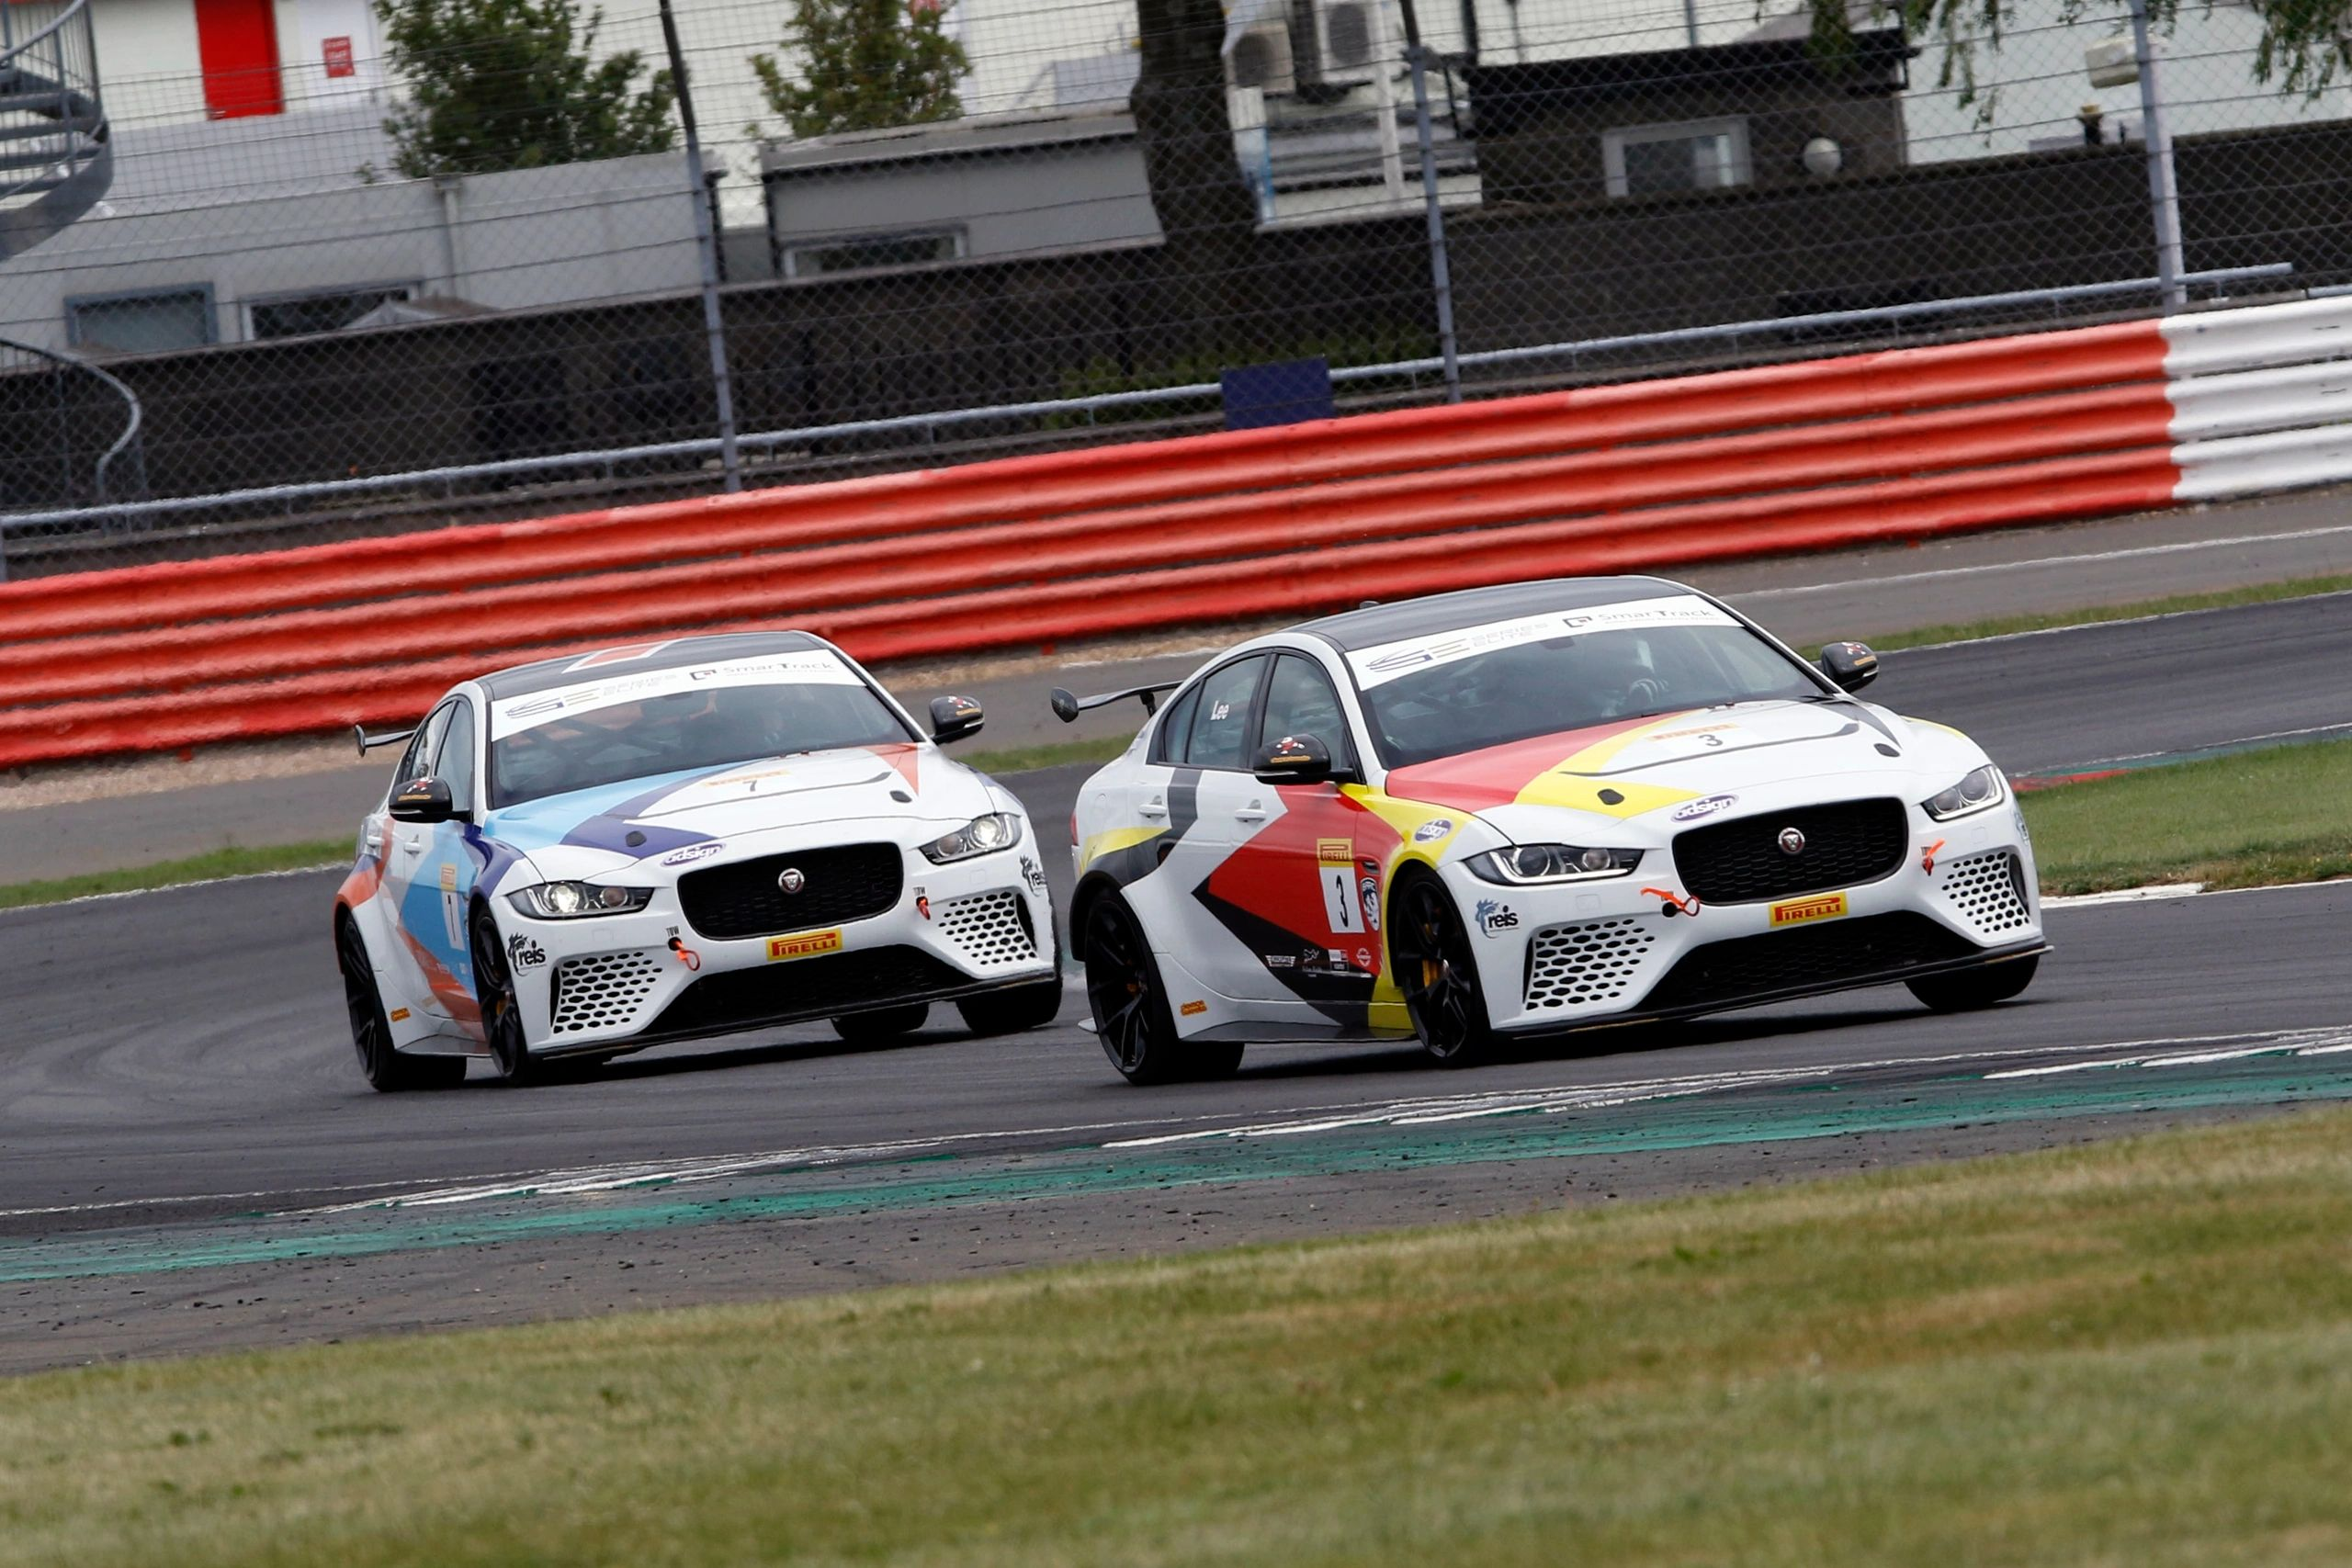 Two Series Elite Jaguar Project 8 race cars on track racing in team livery